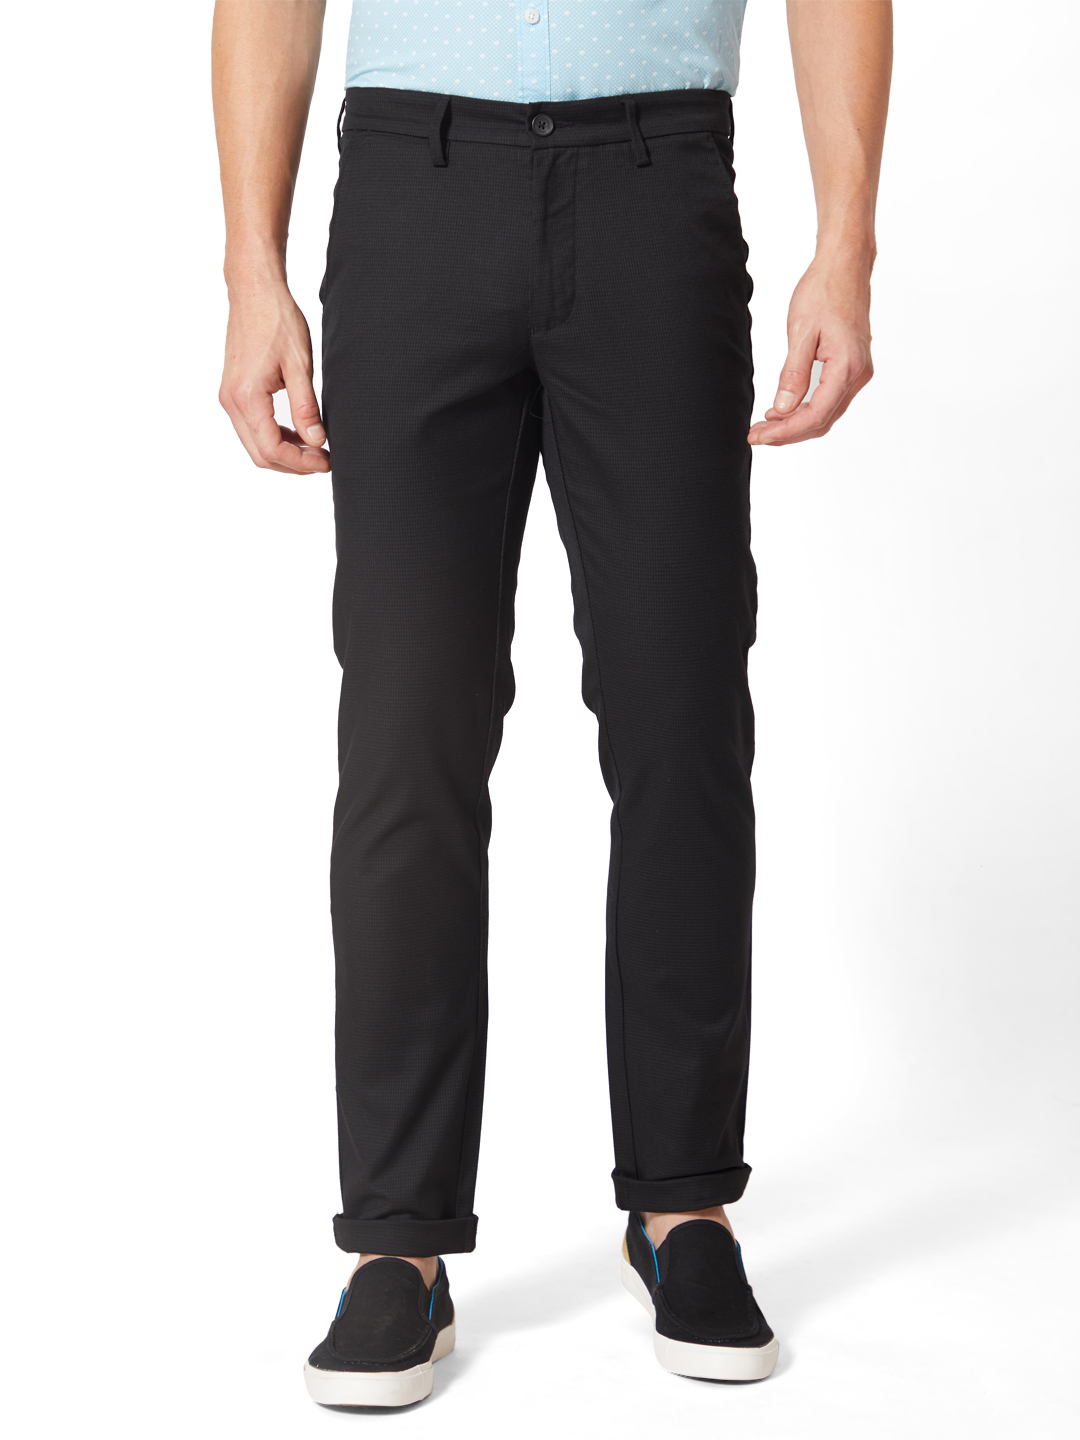 J. HAMPSTEAD | J. Hampstead Men's Comfrot Fit Solid Chinos